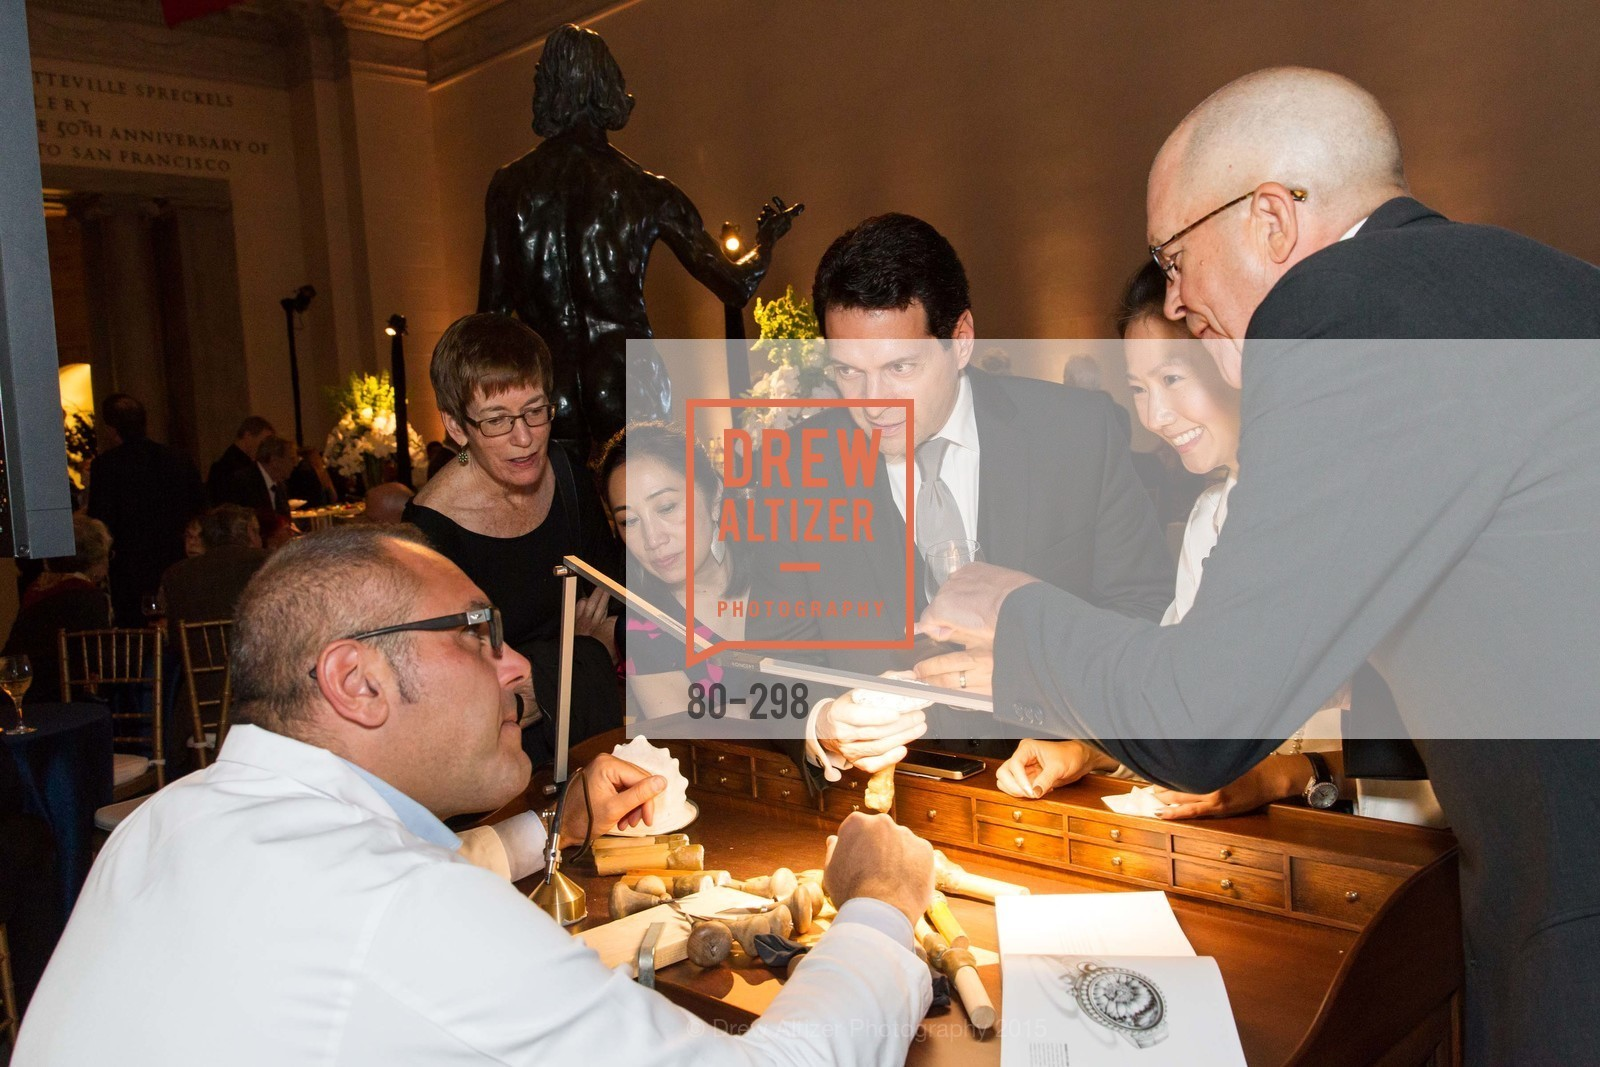 Extras, Breguet and Ancient Luxury Donor Opening Reception at Legion of Honor, September 17th, 2015, Photo,Drew Altizer, Drew Altizer Photography, full-service agency, private events, San Francisco photographer, photographer california